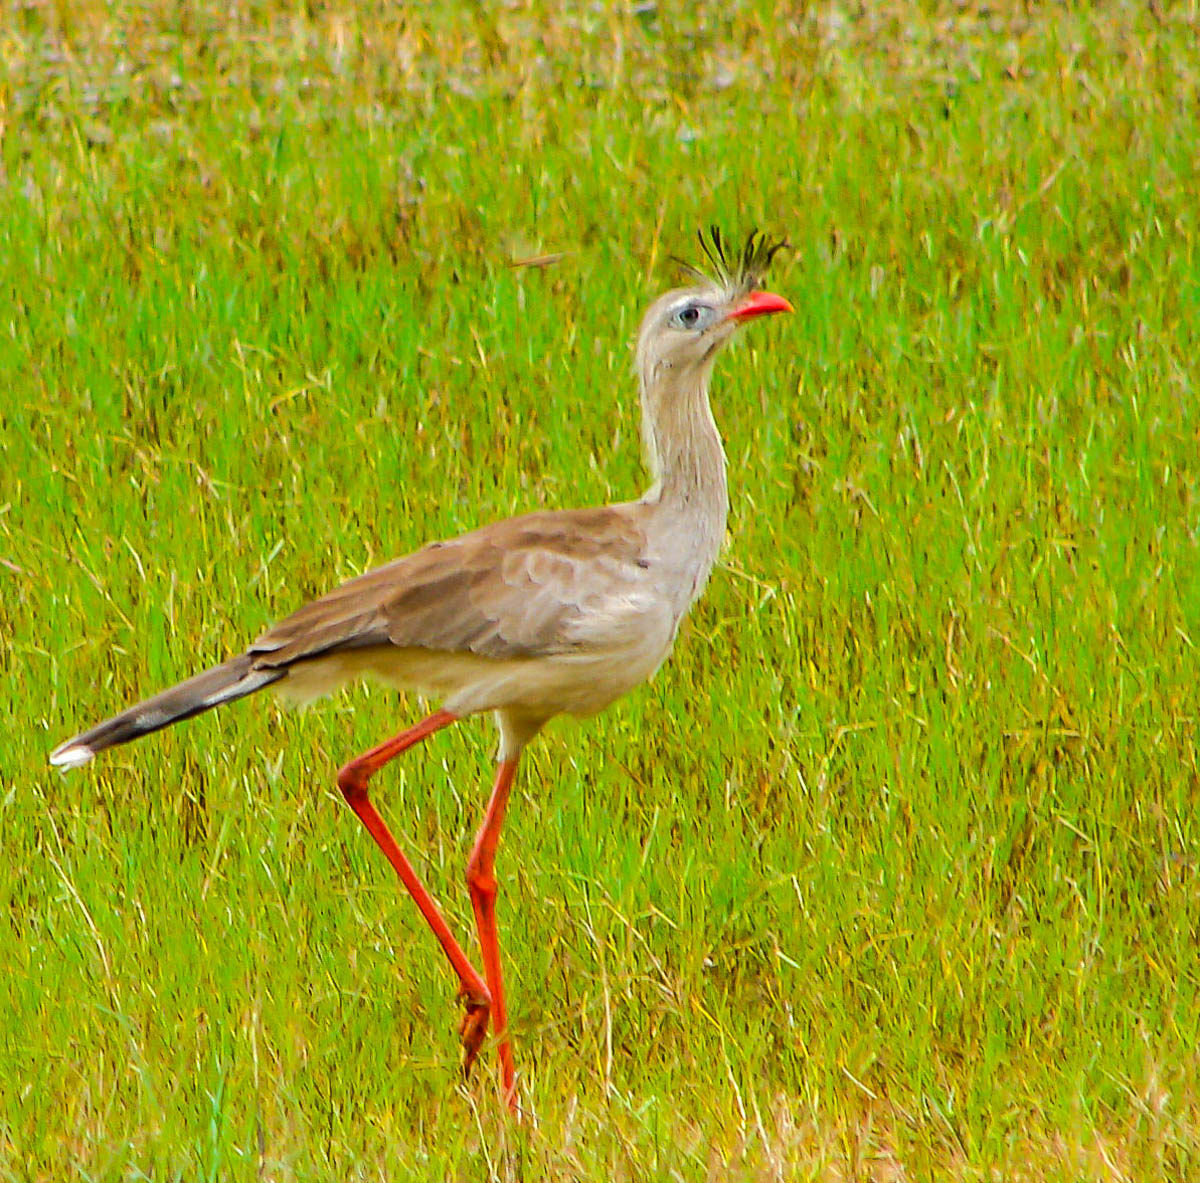 Red-legged Seriema by Reinhard Thomas ©